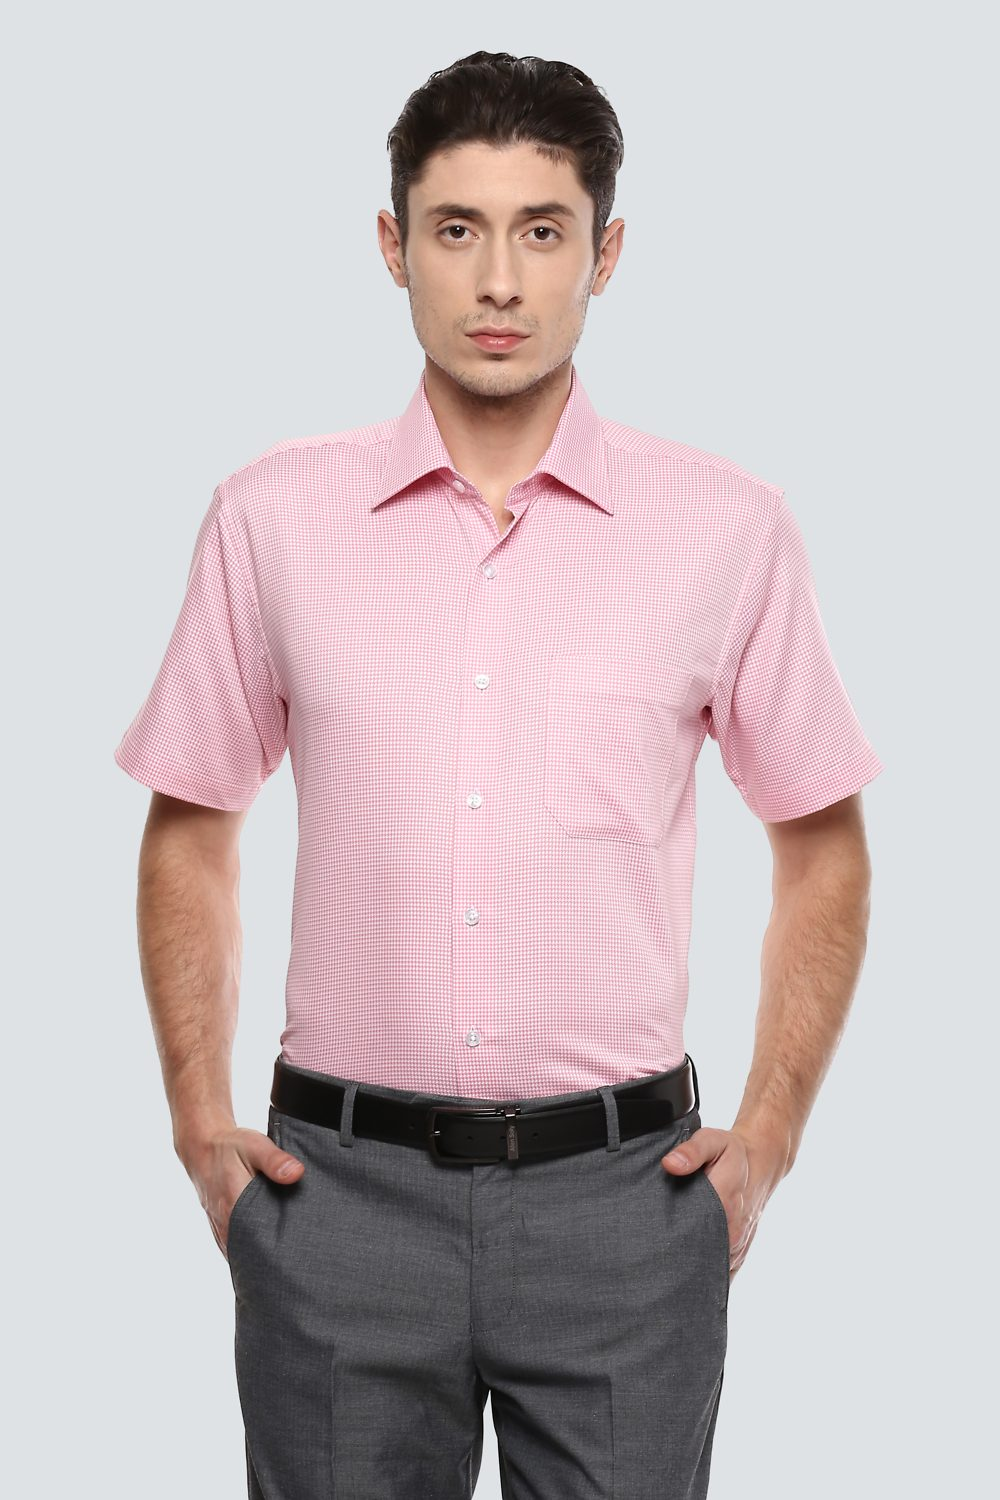 Louis Philippe Shirts Louis Philippe Pink Shirt For Men At